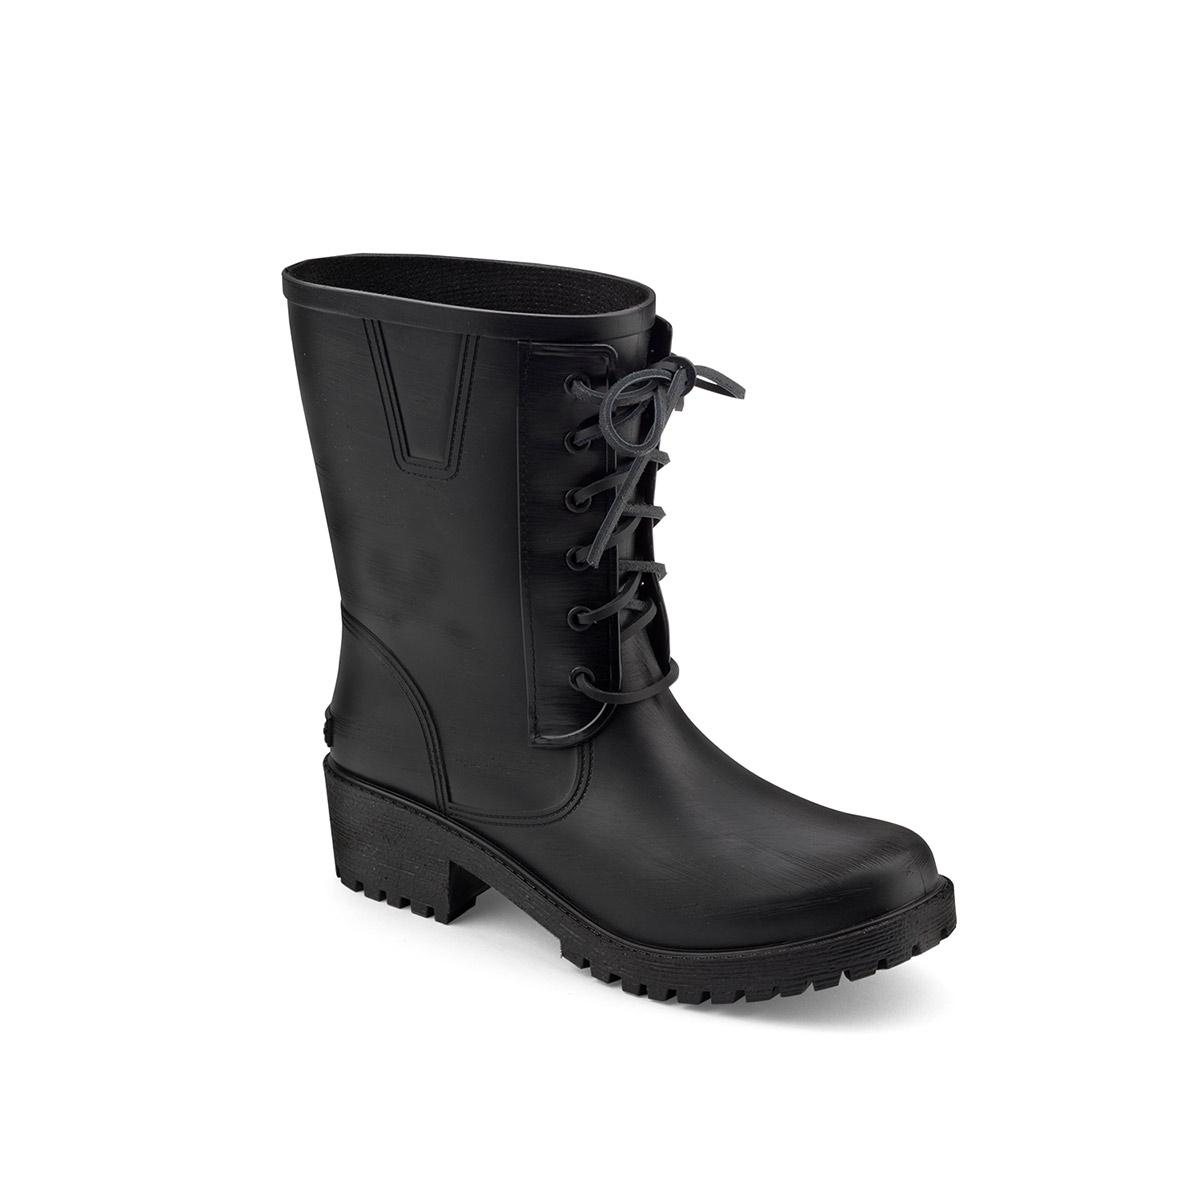 Pvc boot with laces